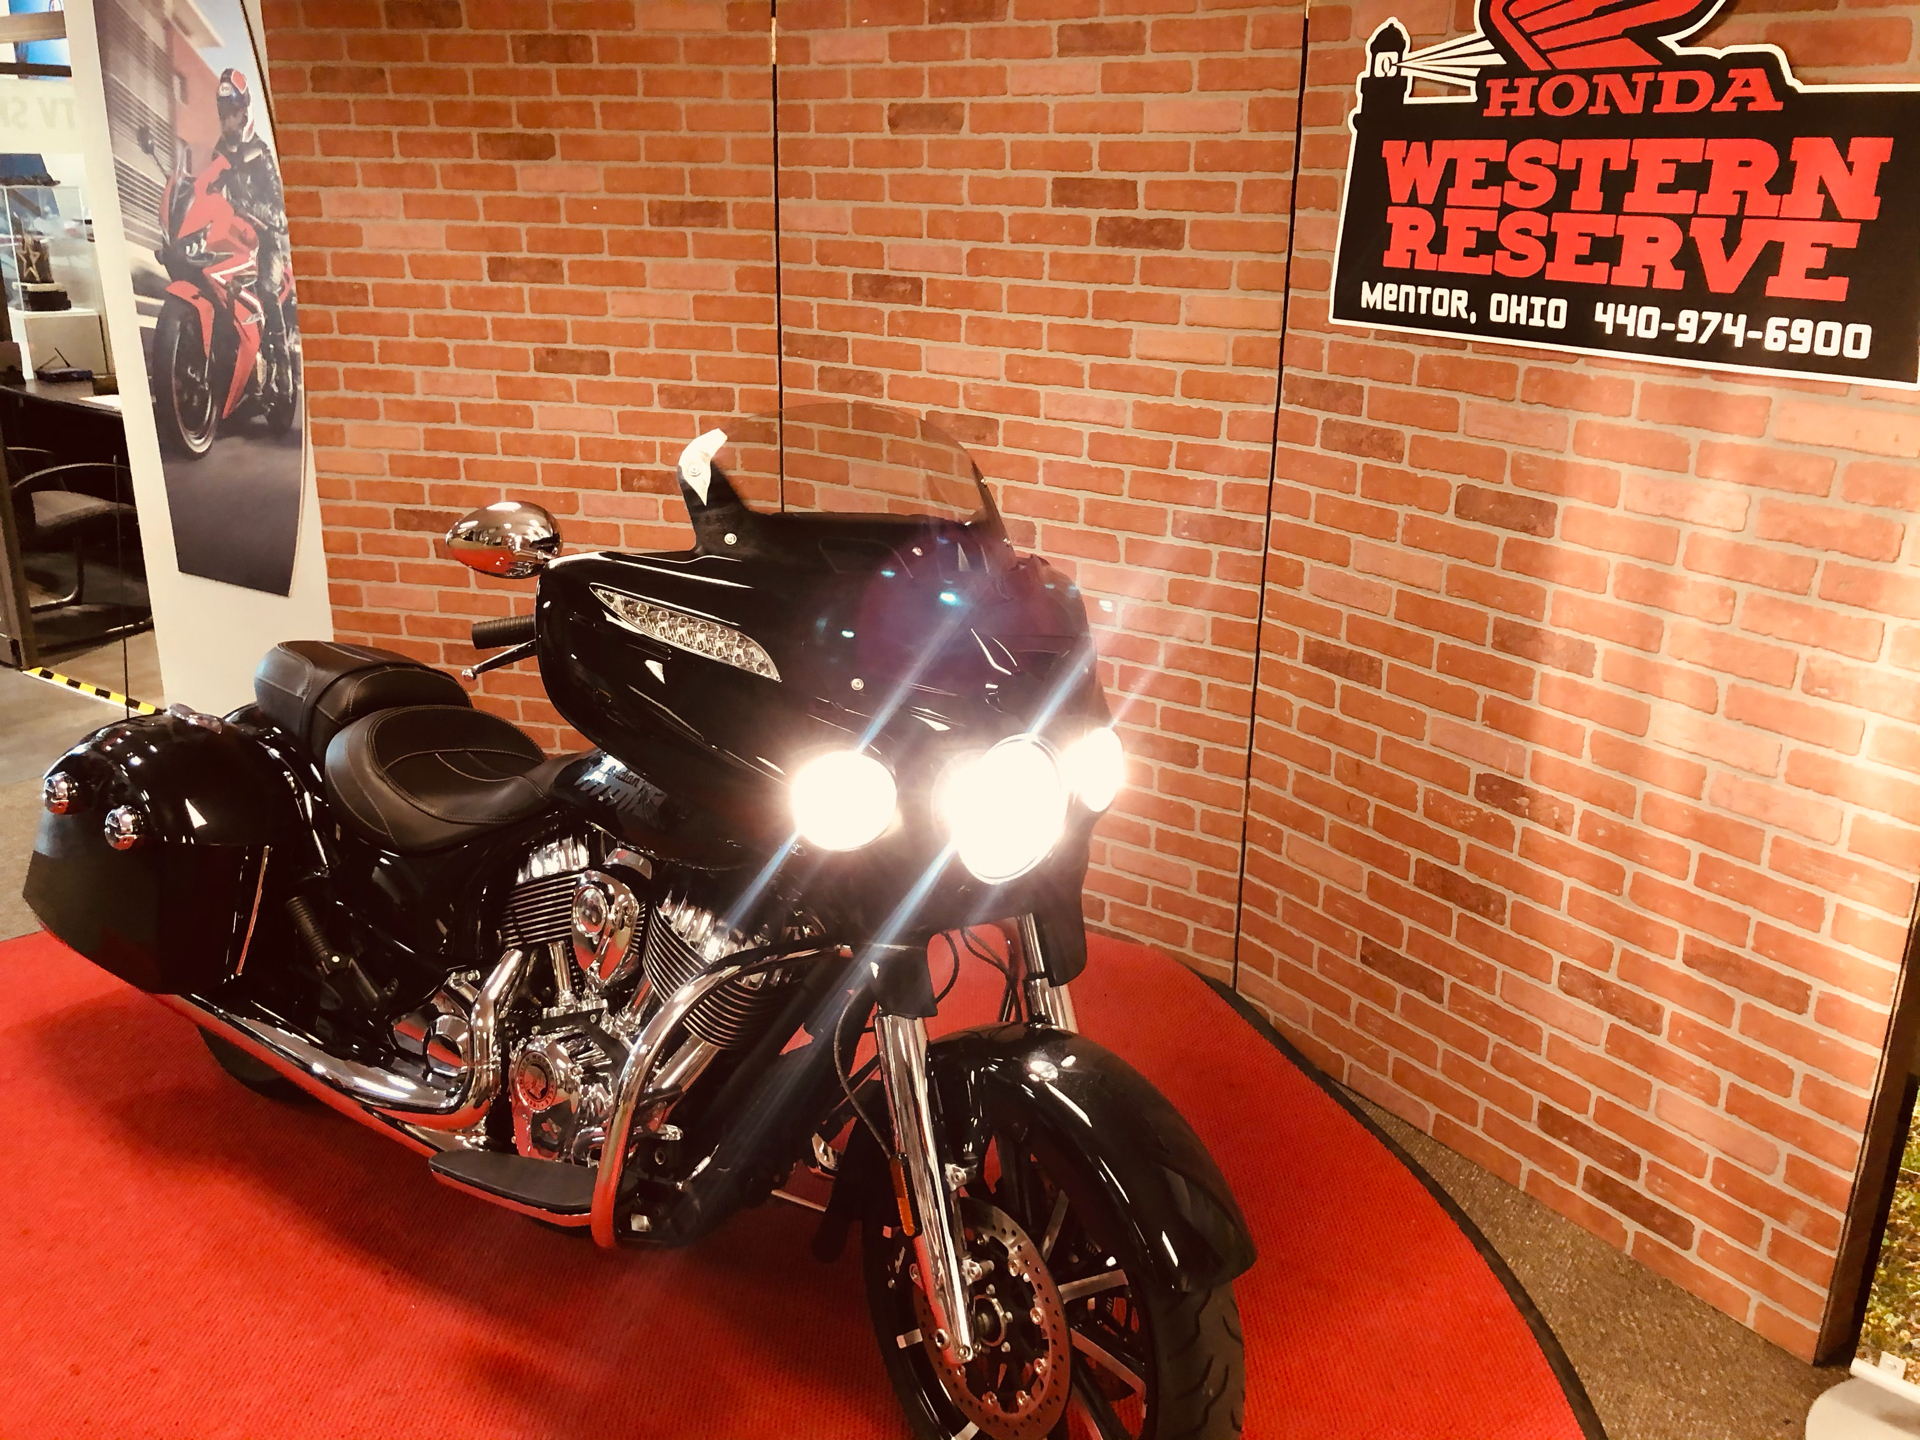 2018 Indian Chieftain® Limited ABS in Mentor, Ohio - Photo 2